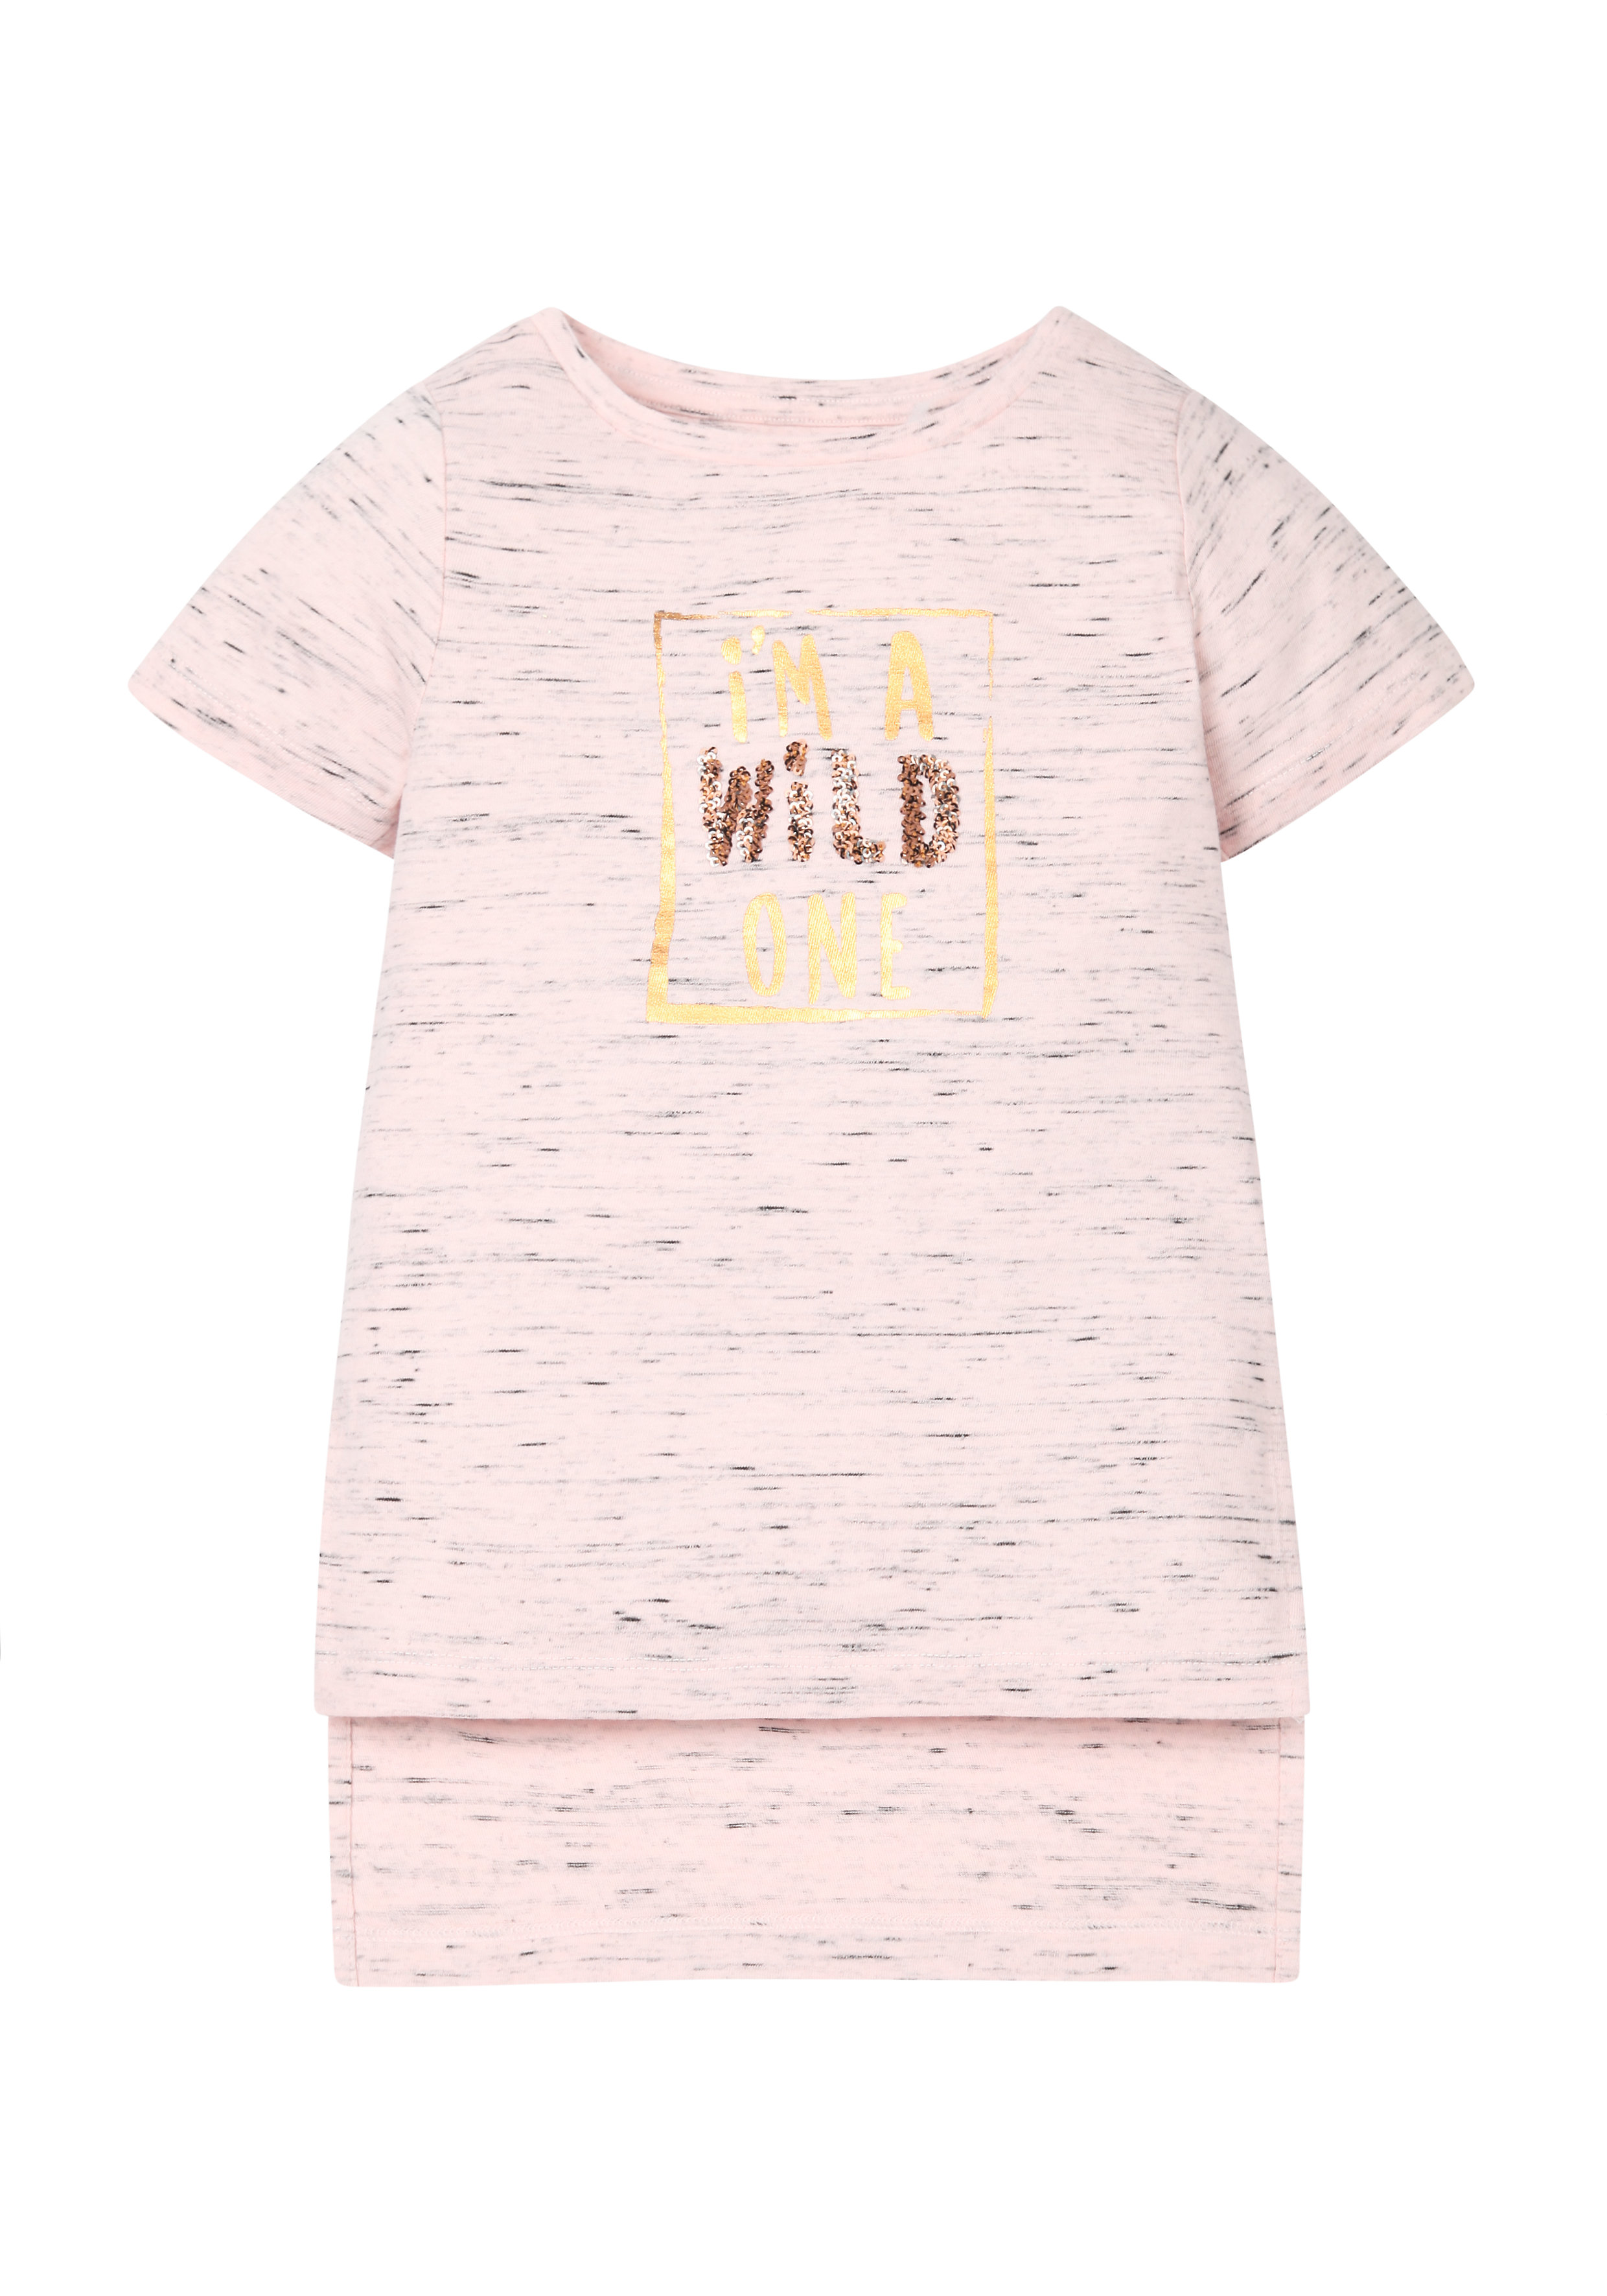 Mothercare   Girls Wild One T-Shirt - Pink